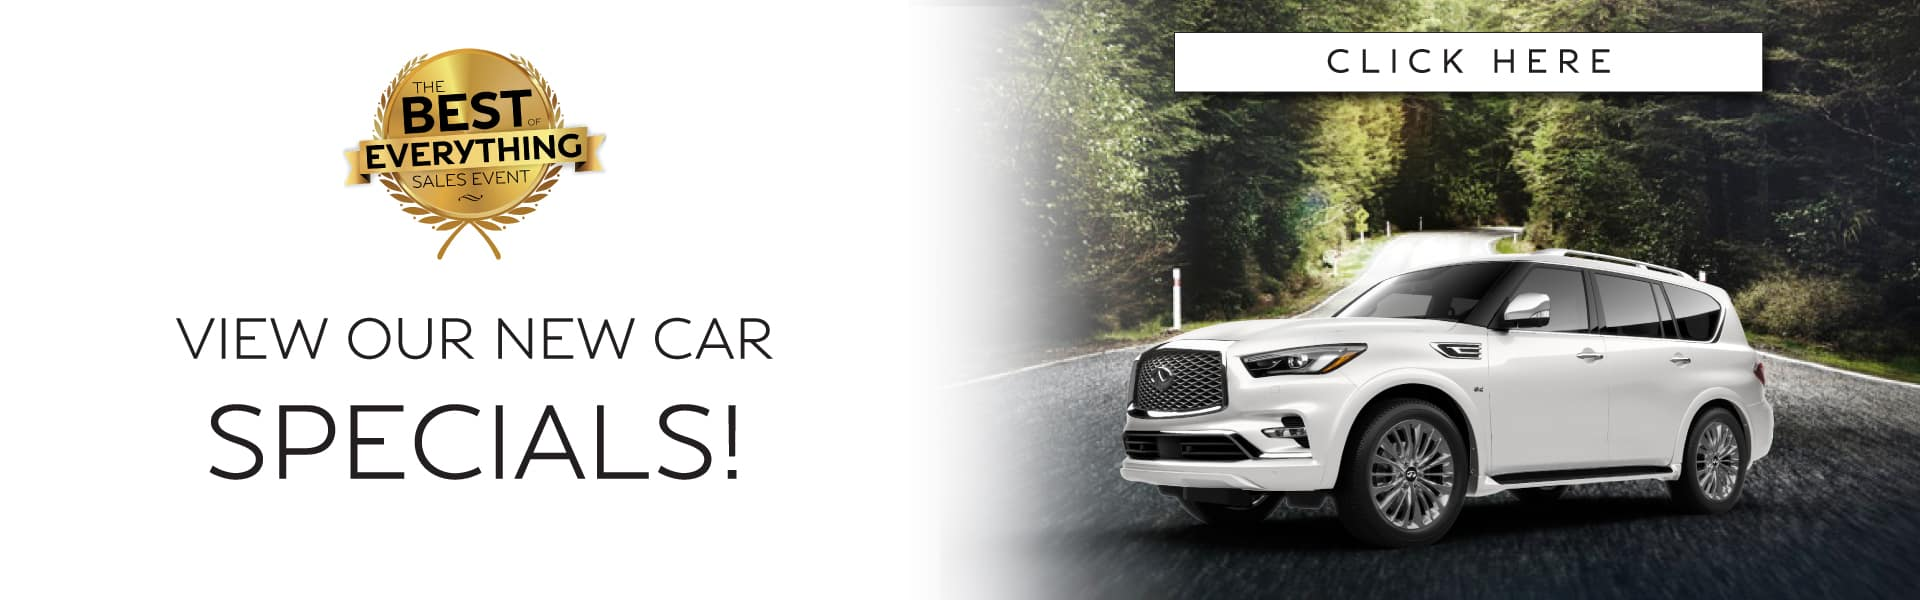 View our new car Specials! Click here to view our specials.